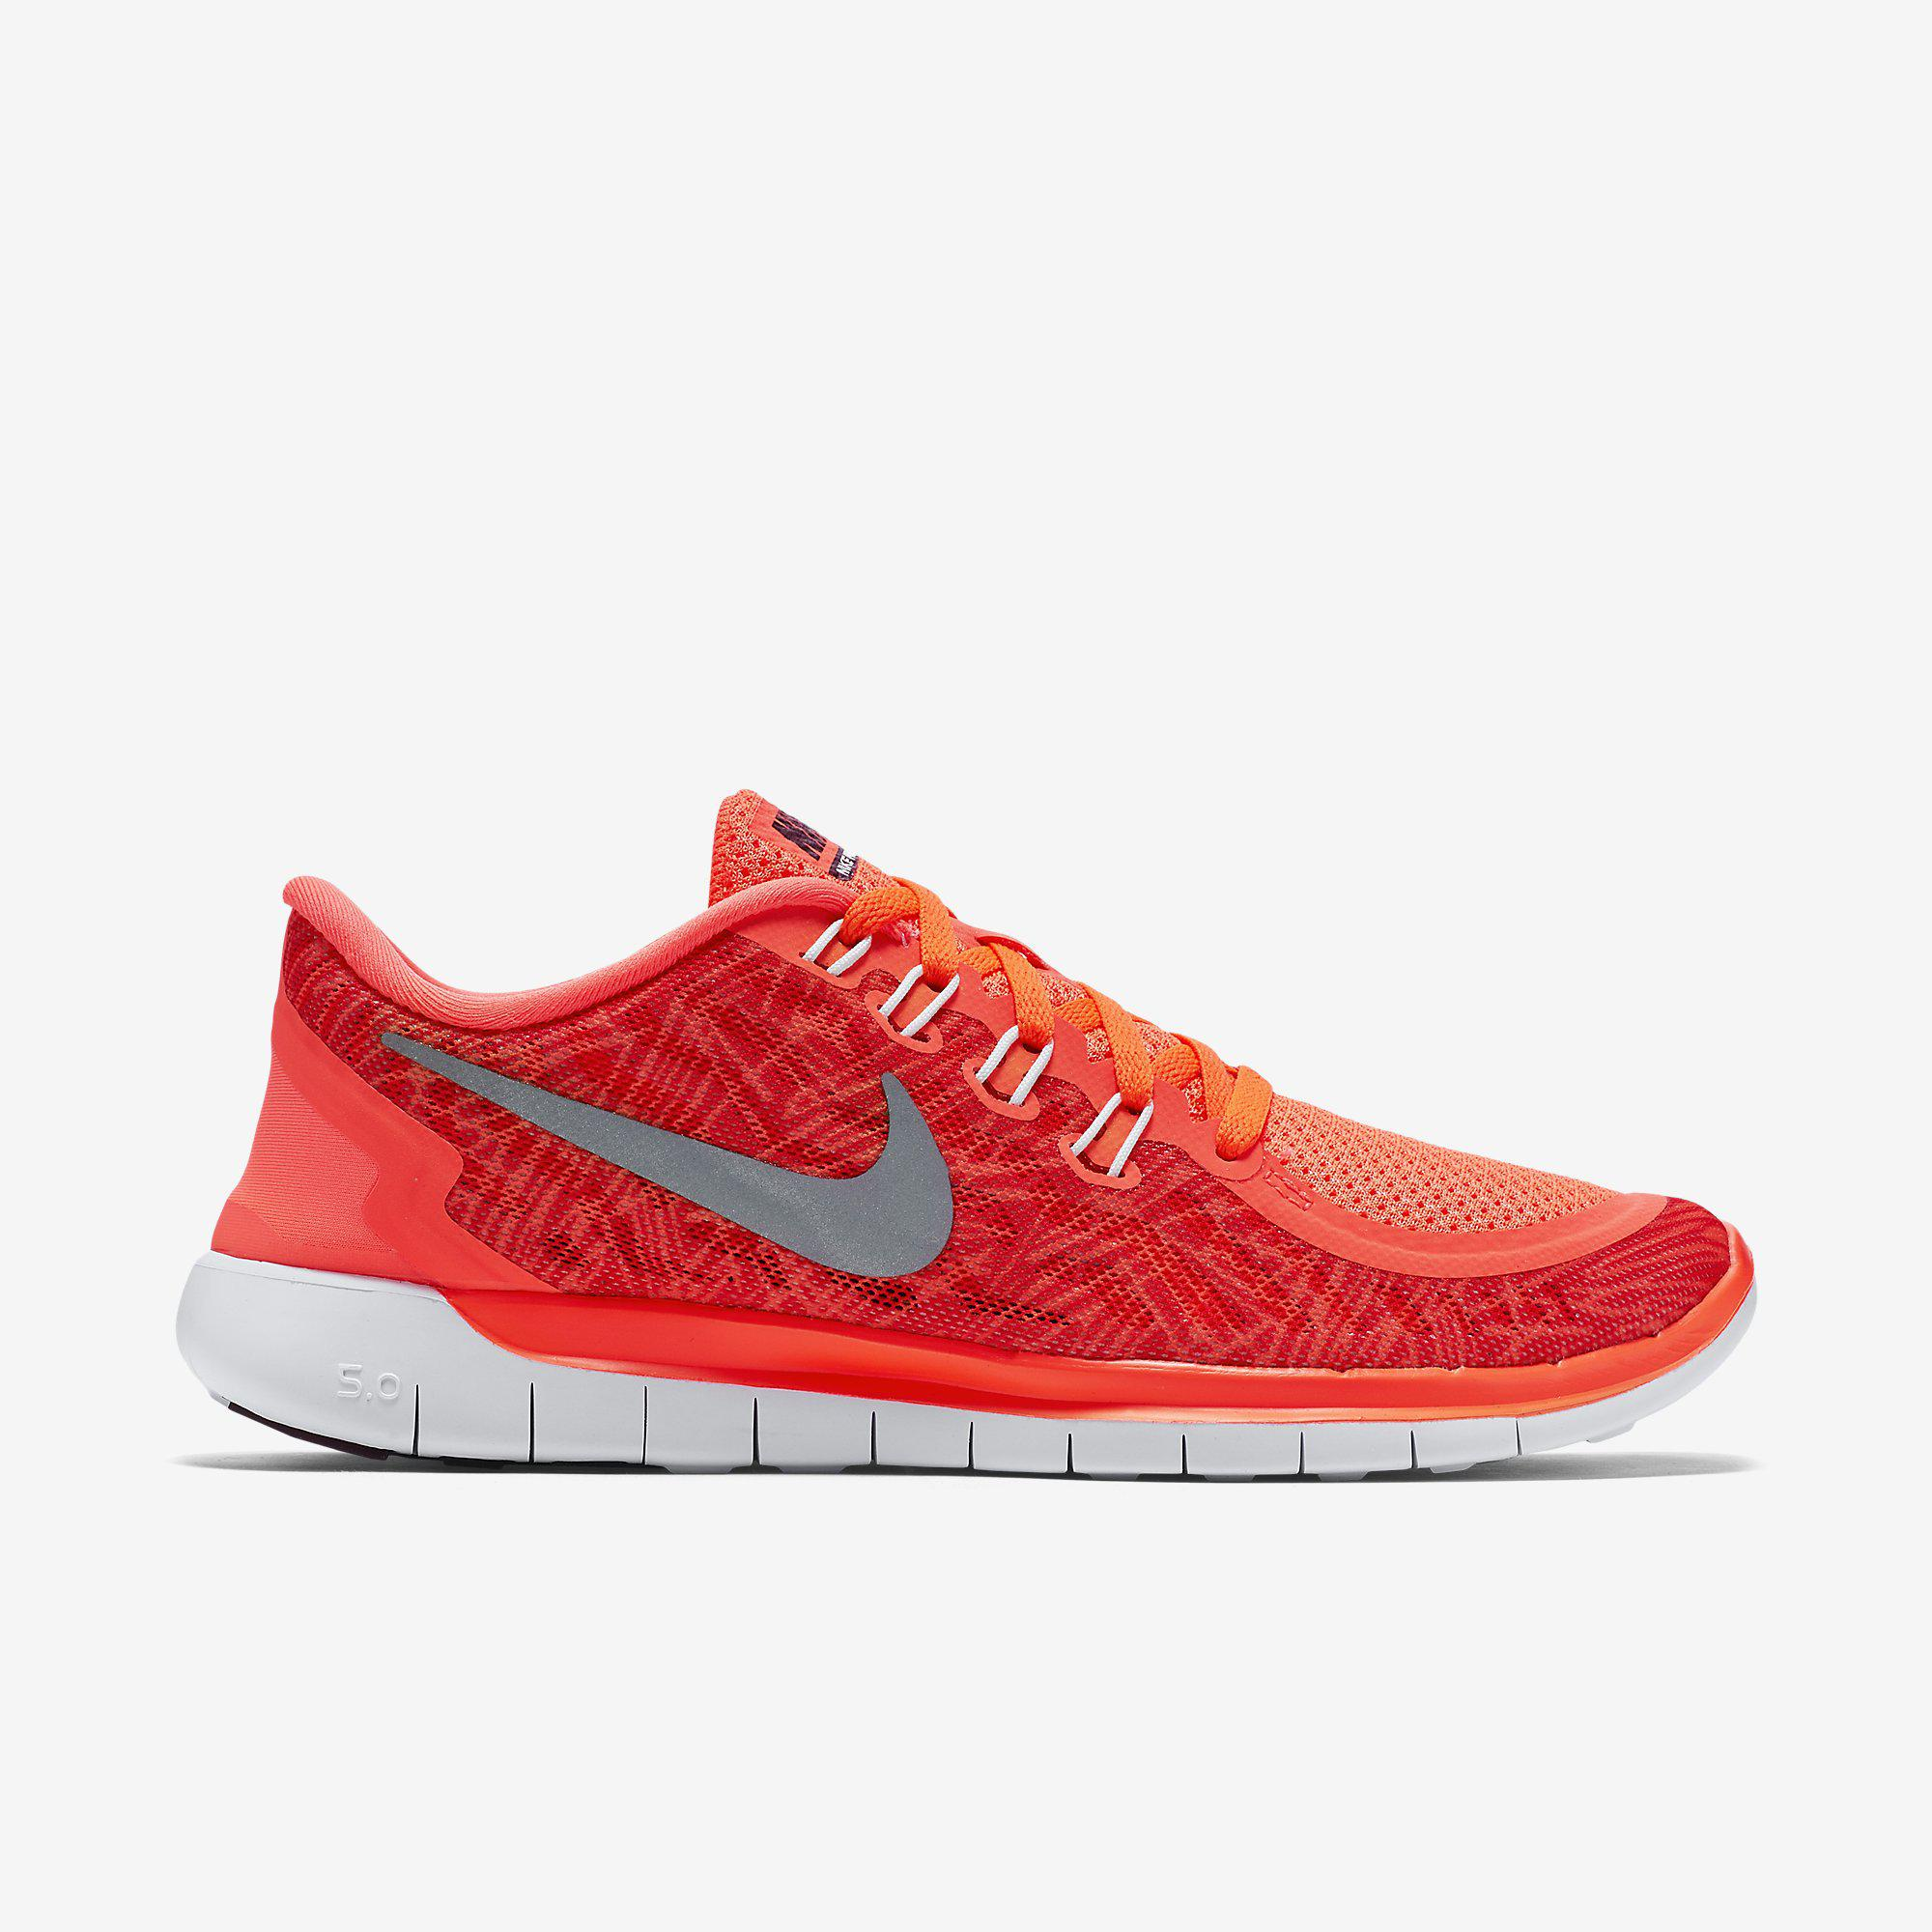 2dfdb7366f3c Nike Womens Free 5.0 Print Running Shoes - Hyper Orange - Tennisnuts.com